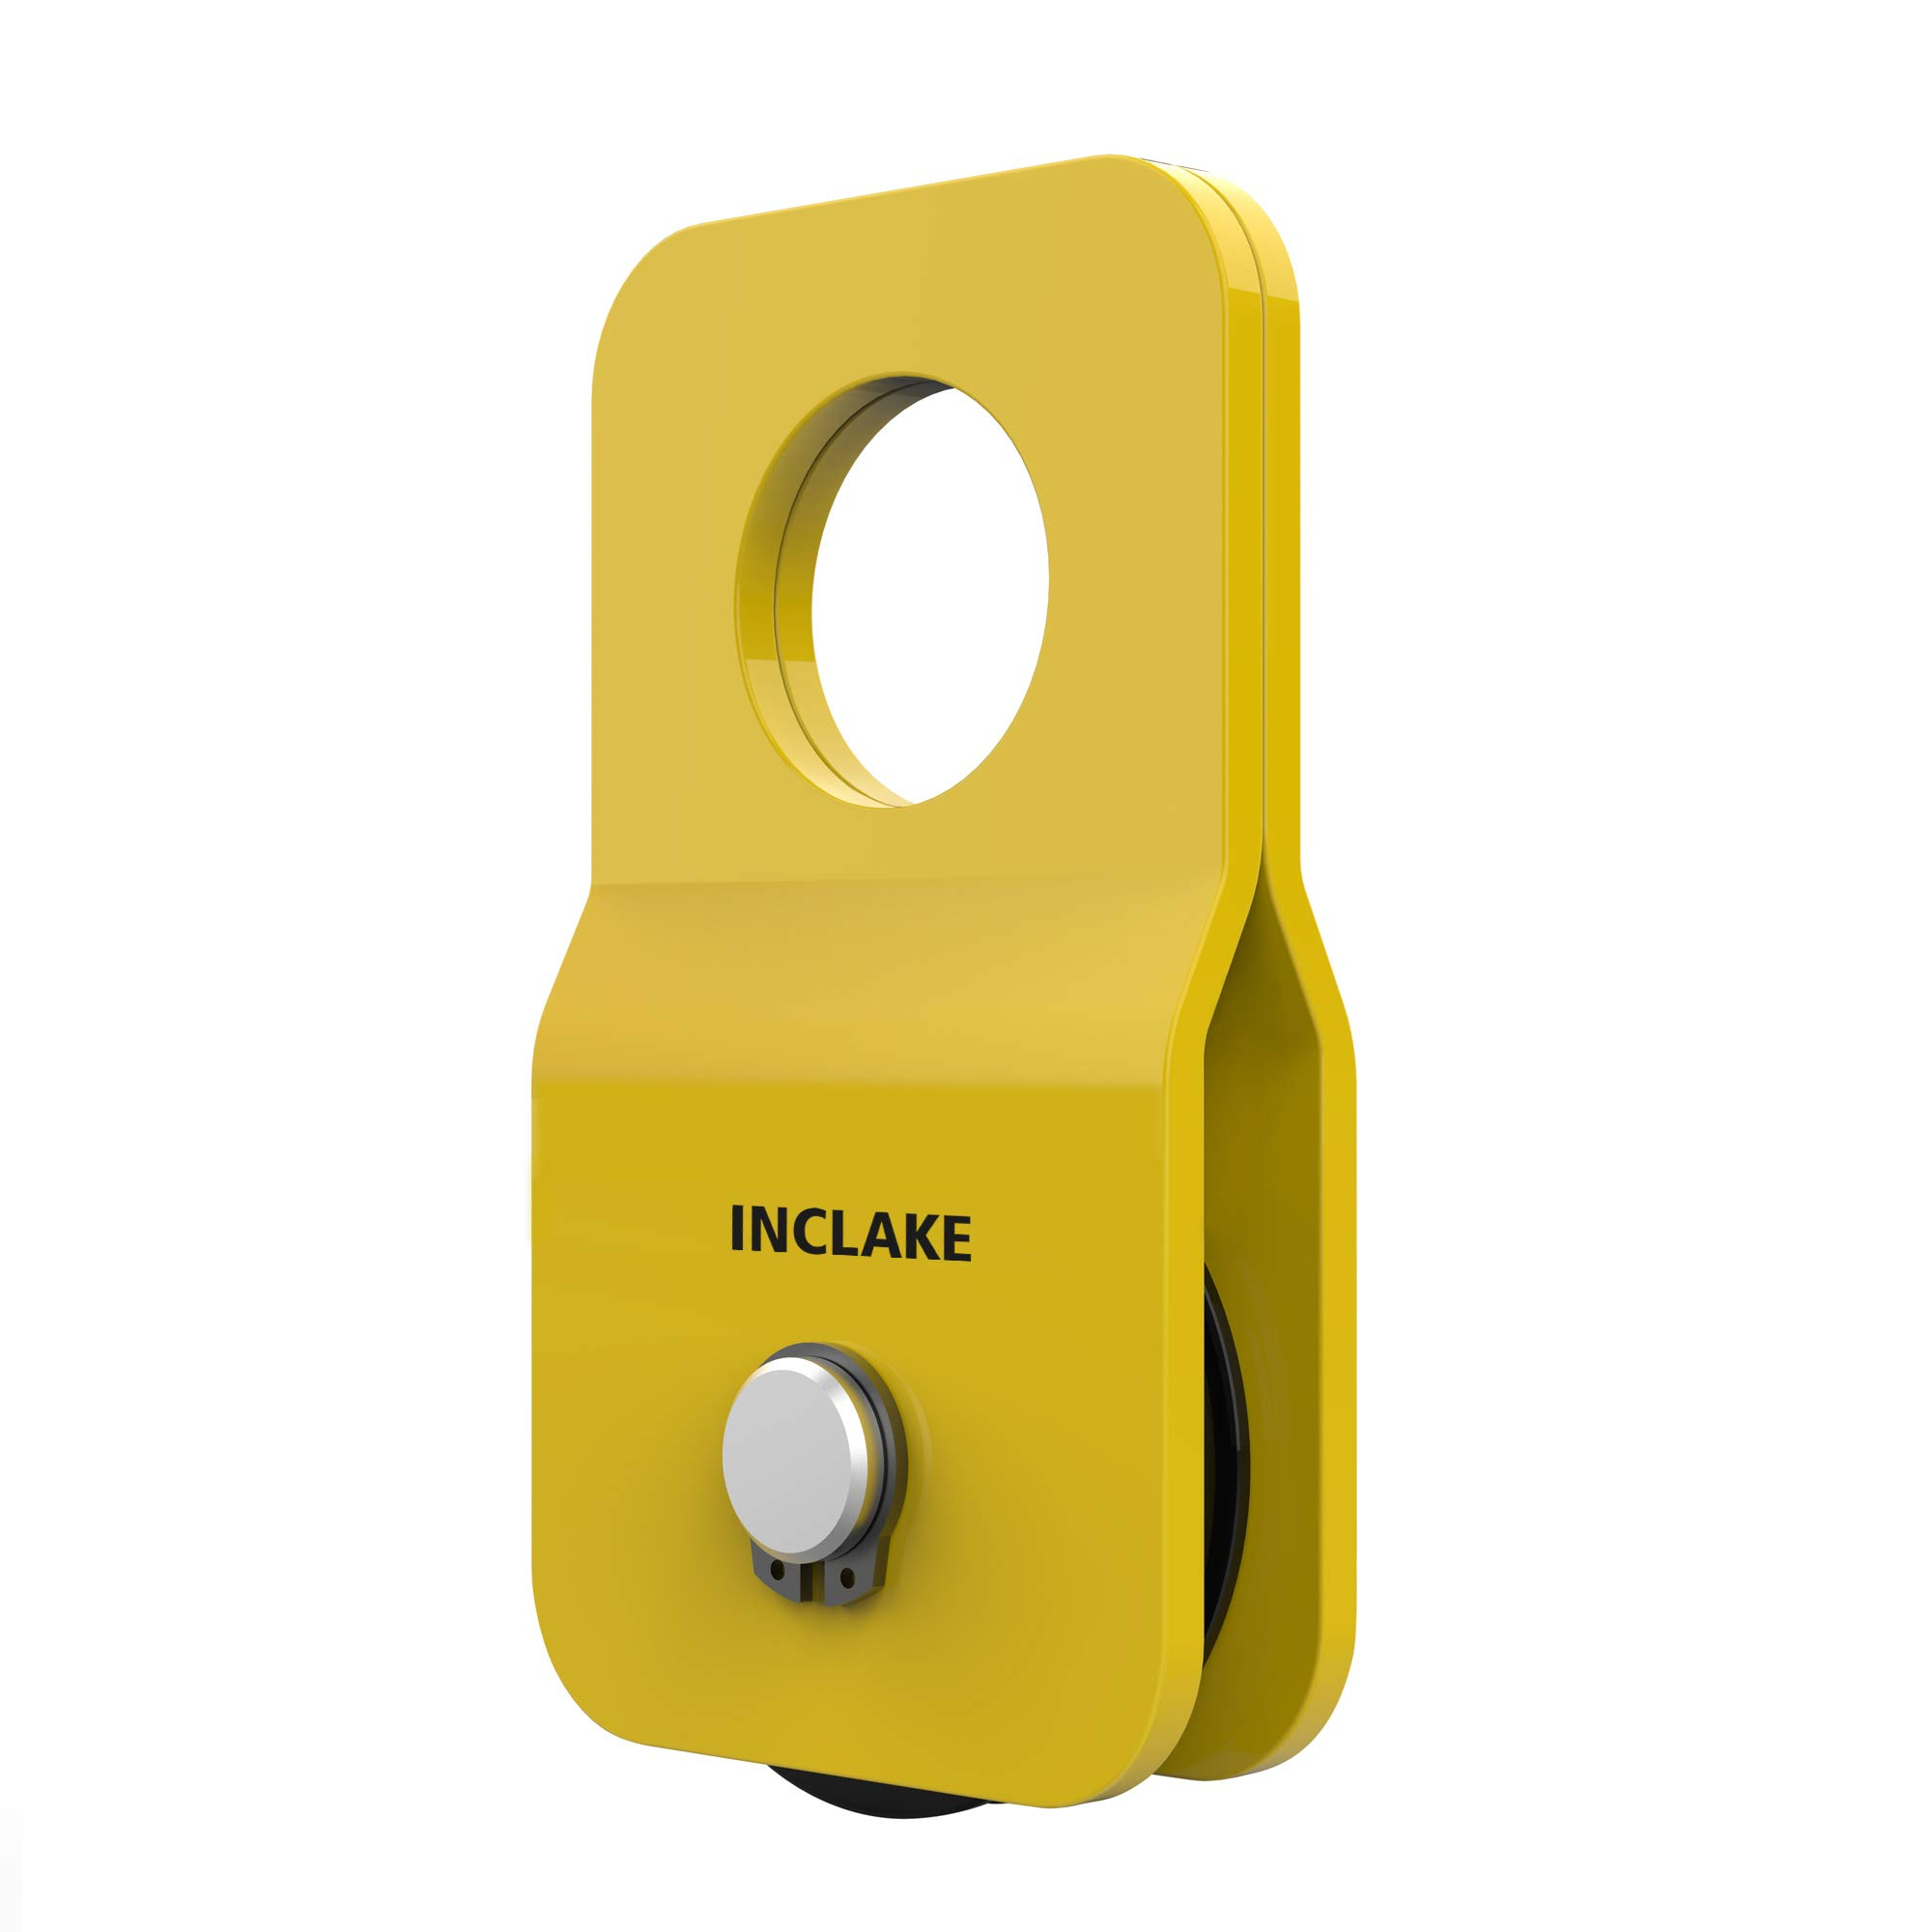 INCLAKE Snatch Block (Max 4.8 Ton 10,500LBS) Winch Pulley Block 10,500lbs Capacity, Rope Diameter Up to 10mm 0.4 Inch for UTV ATV Recovery or Industrial Use by ARCTICSCORPION by INCLAKE